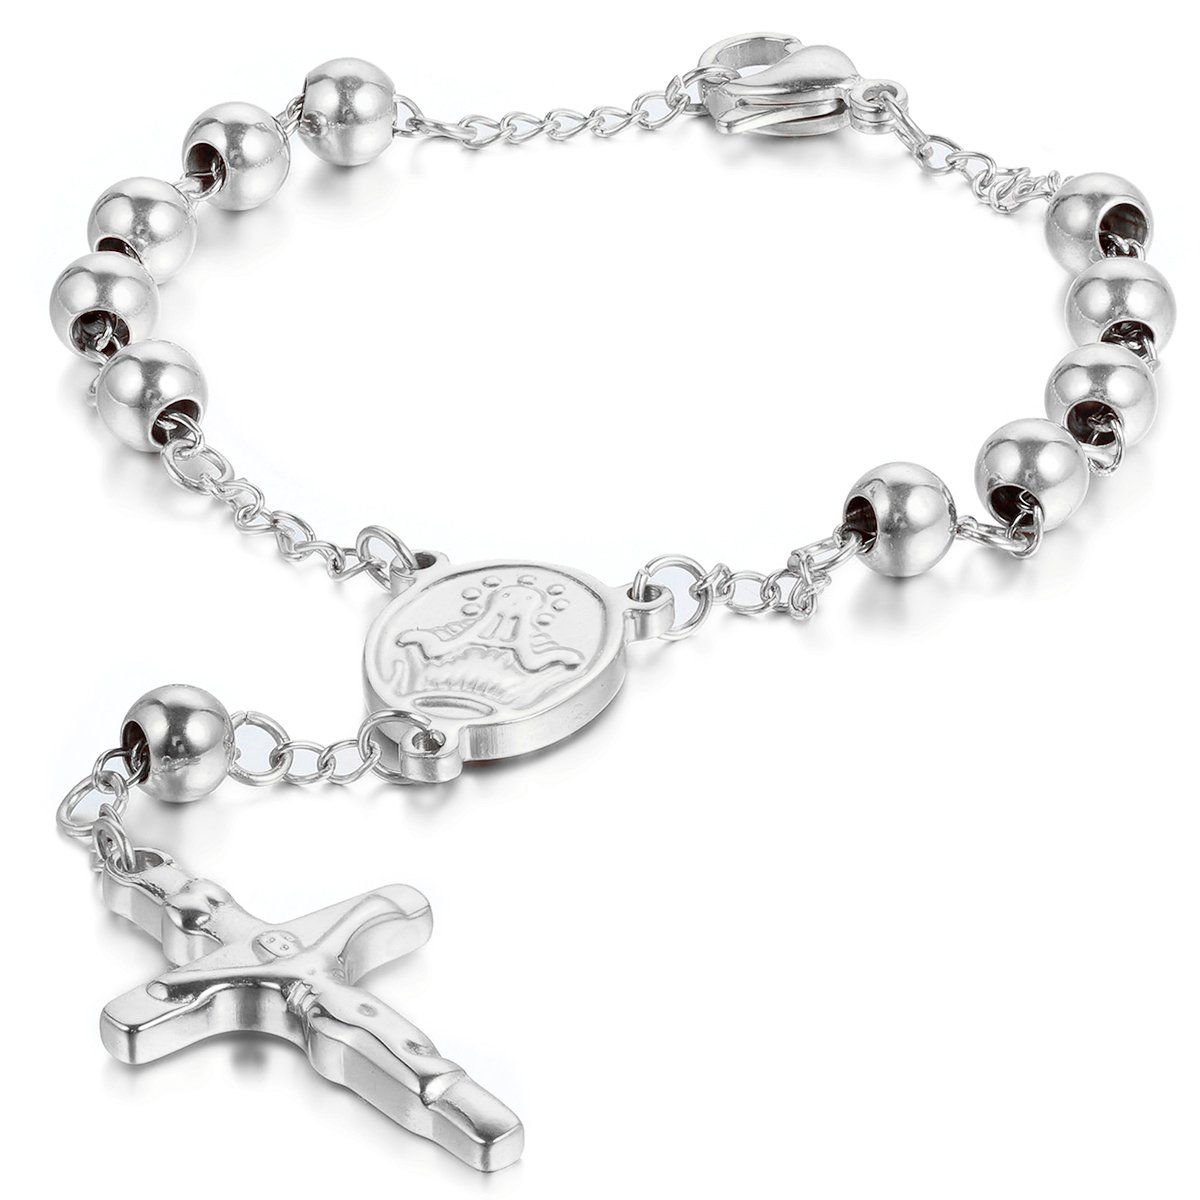 Jewelrywe Men Women's Stainless Steel Religious Catholic Rosary Beads Chain Bracelet with Crucifix Cross and Medal Silver Christmas Cyber Monday Deal Gift JW34PCA005